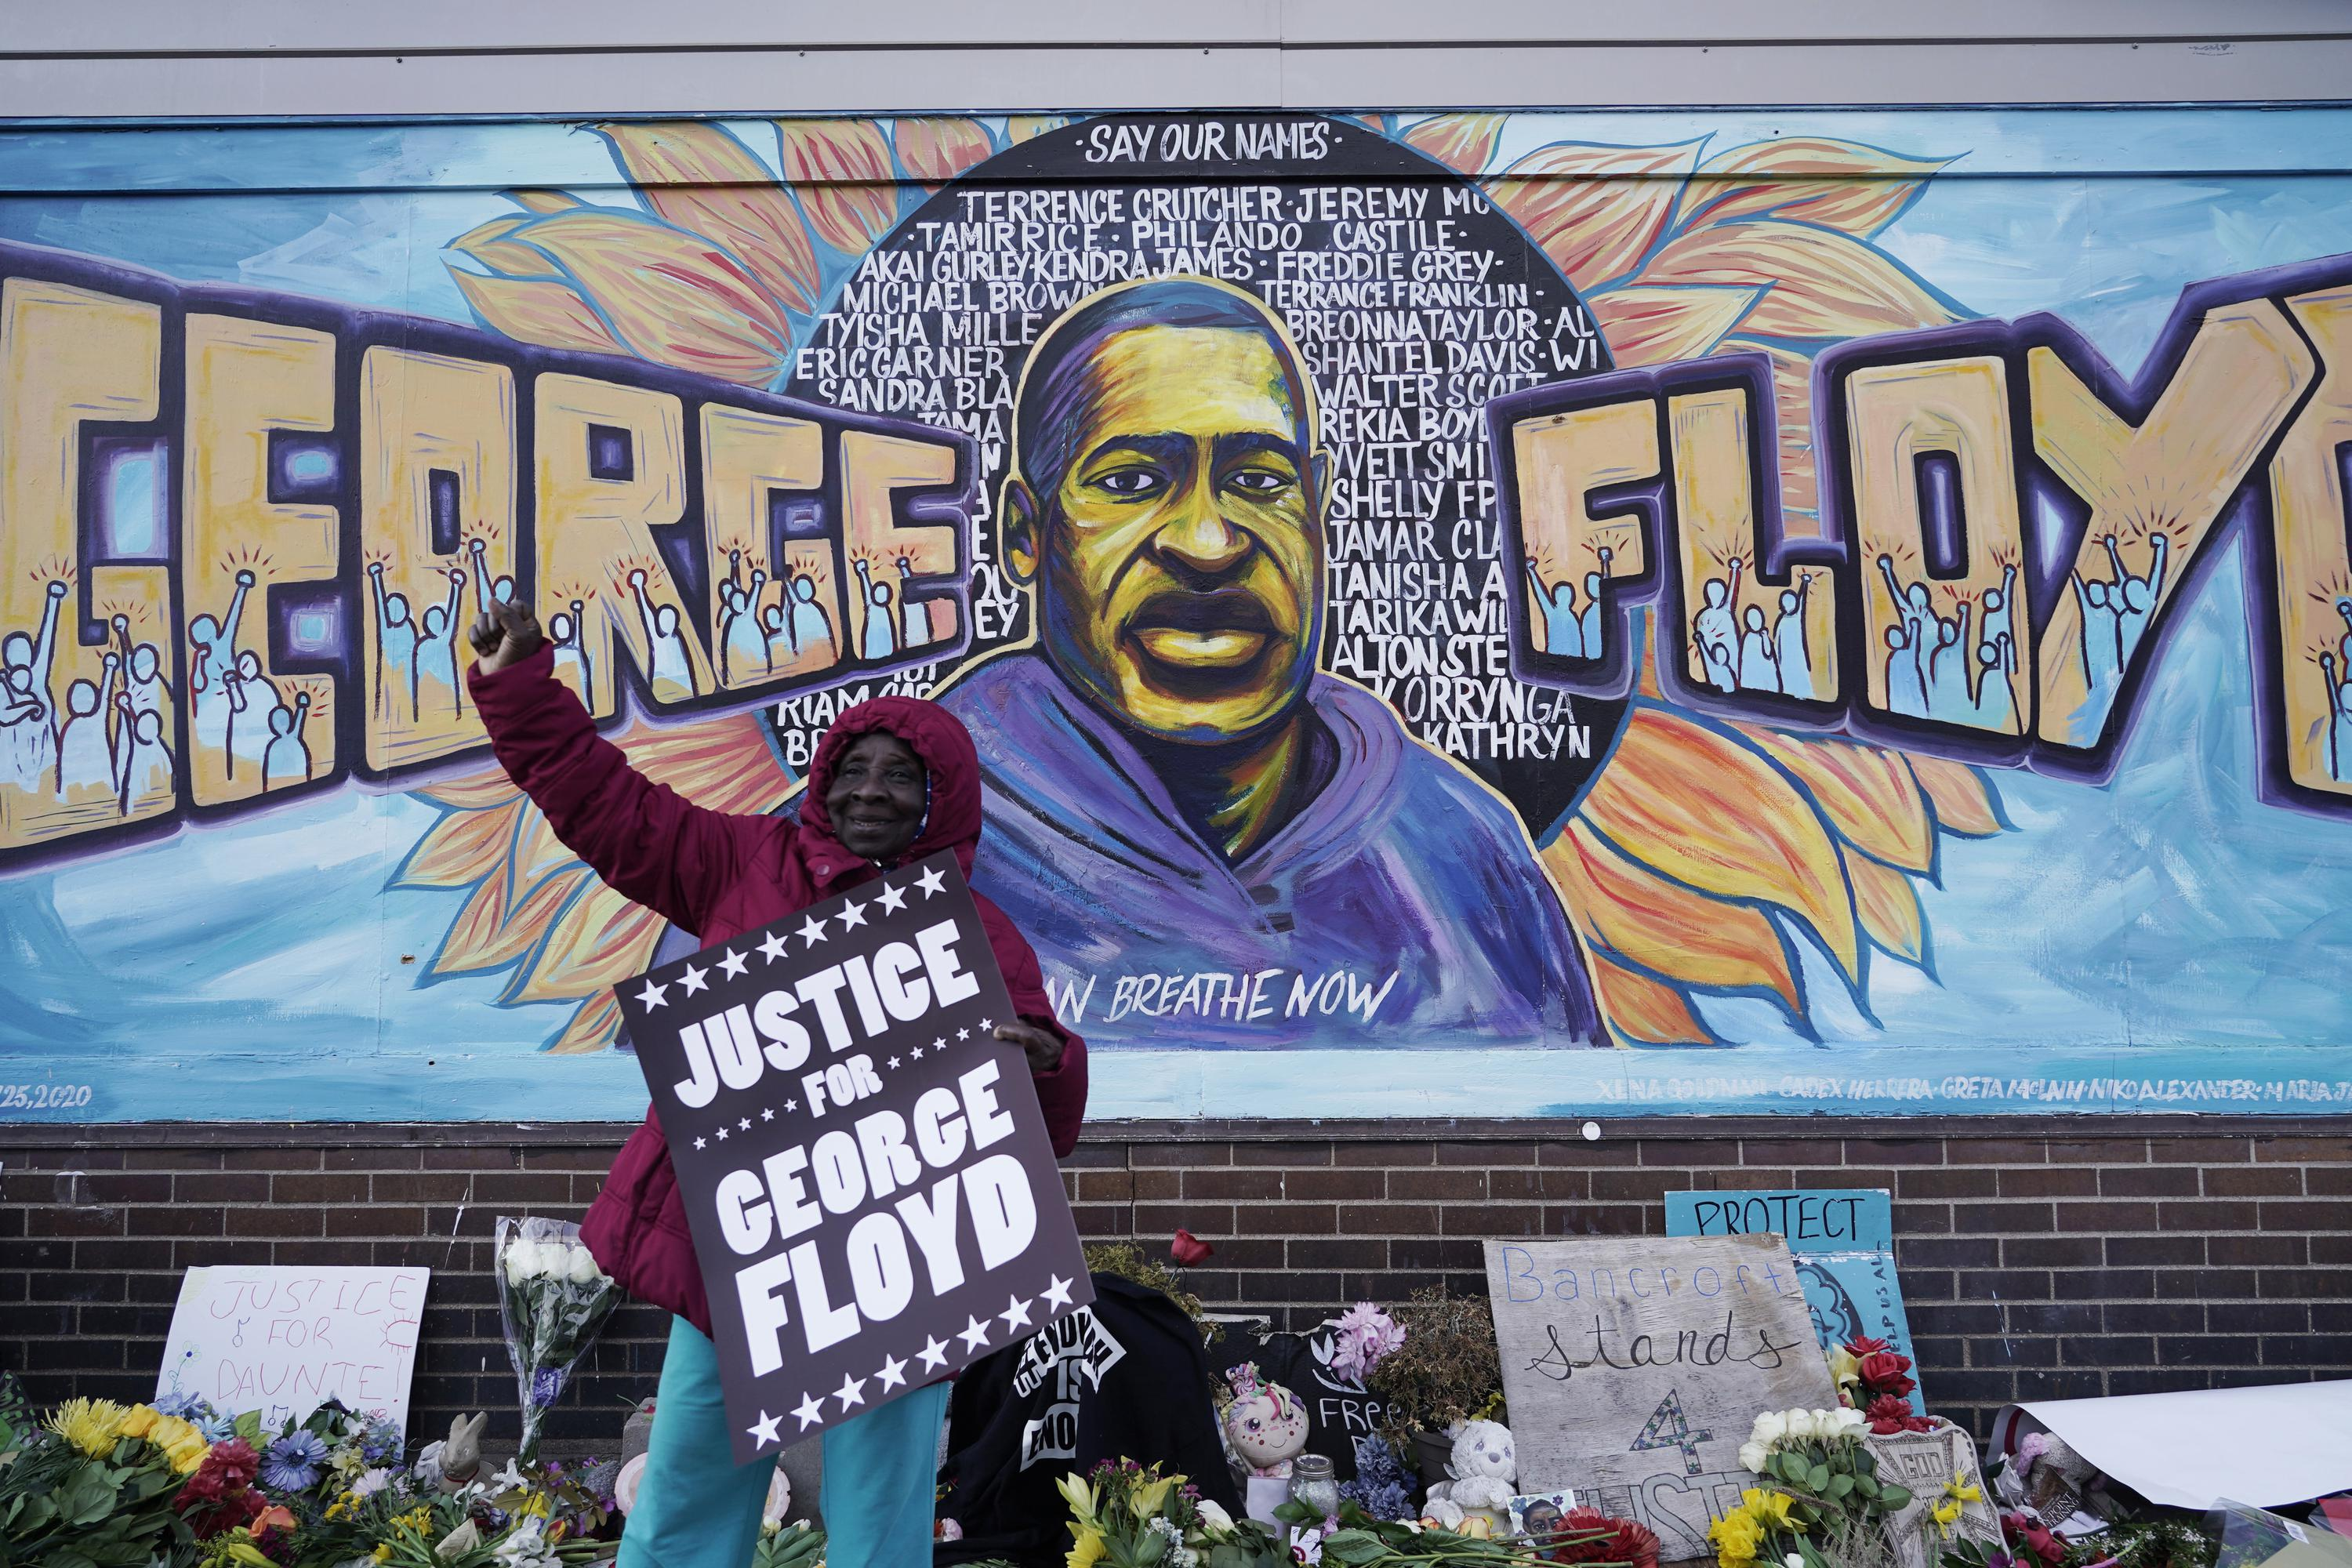 AP-NORC poll: Police violence remains high concern in U.S.